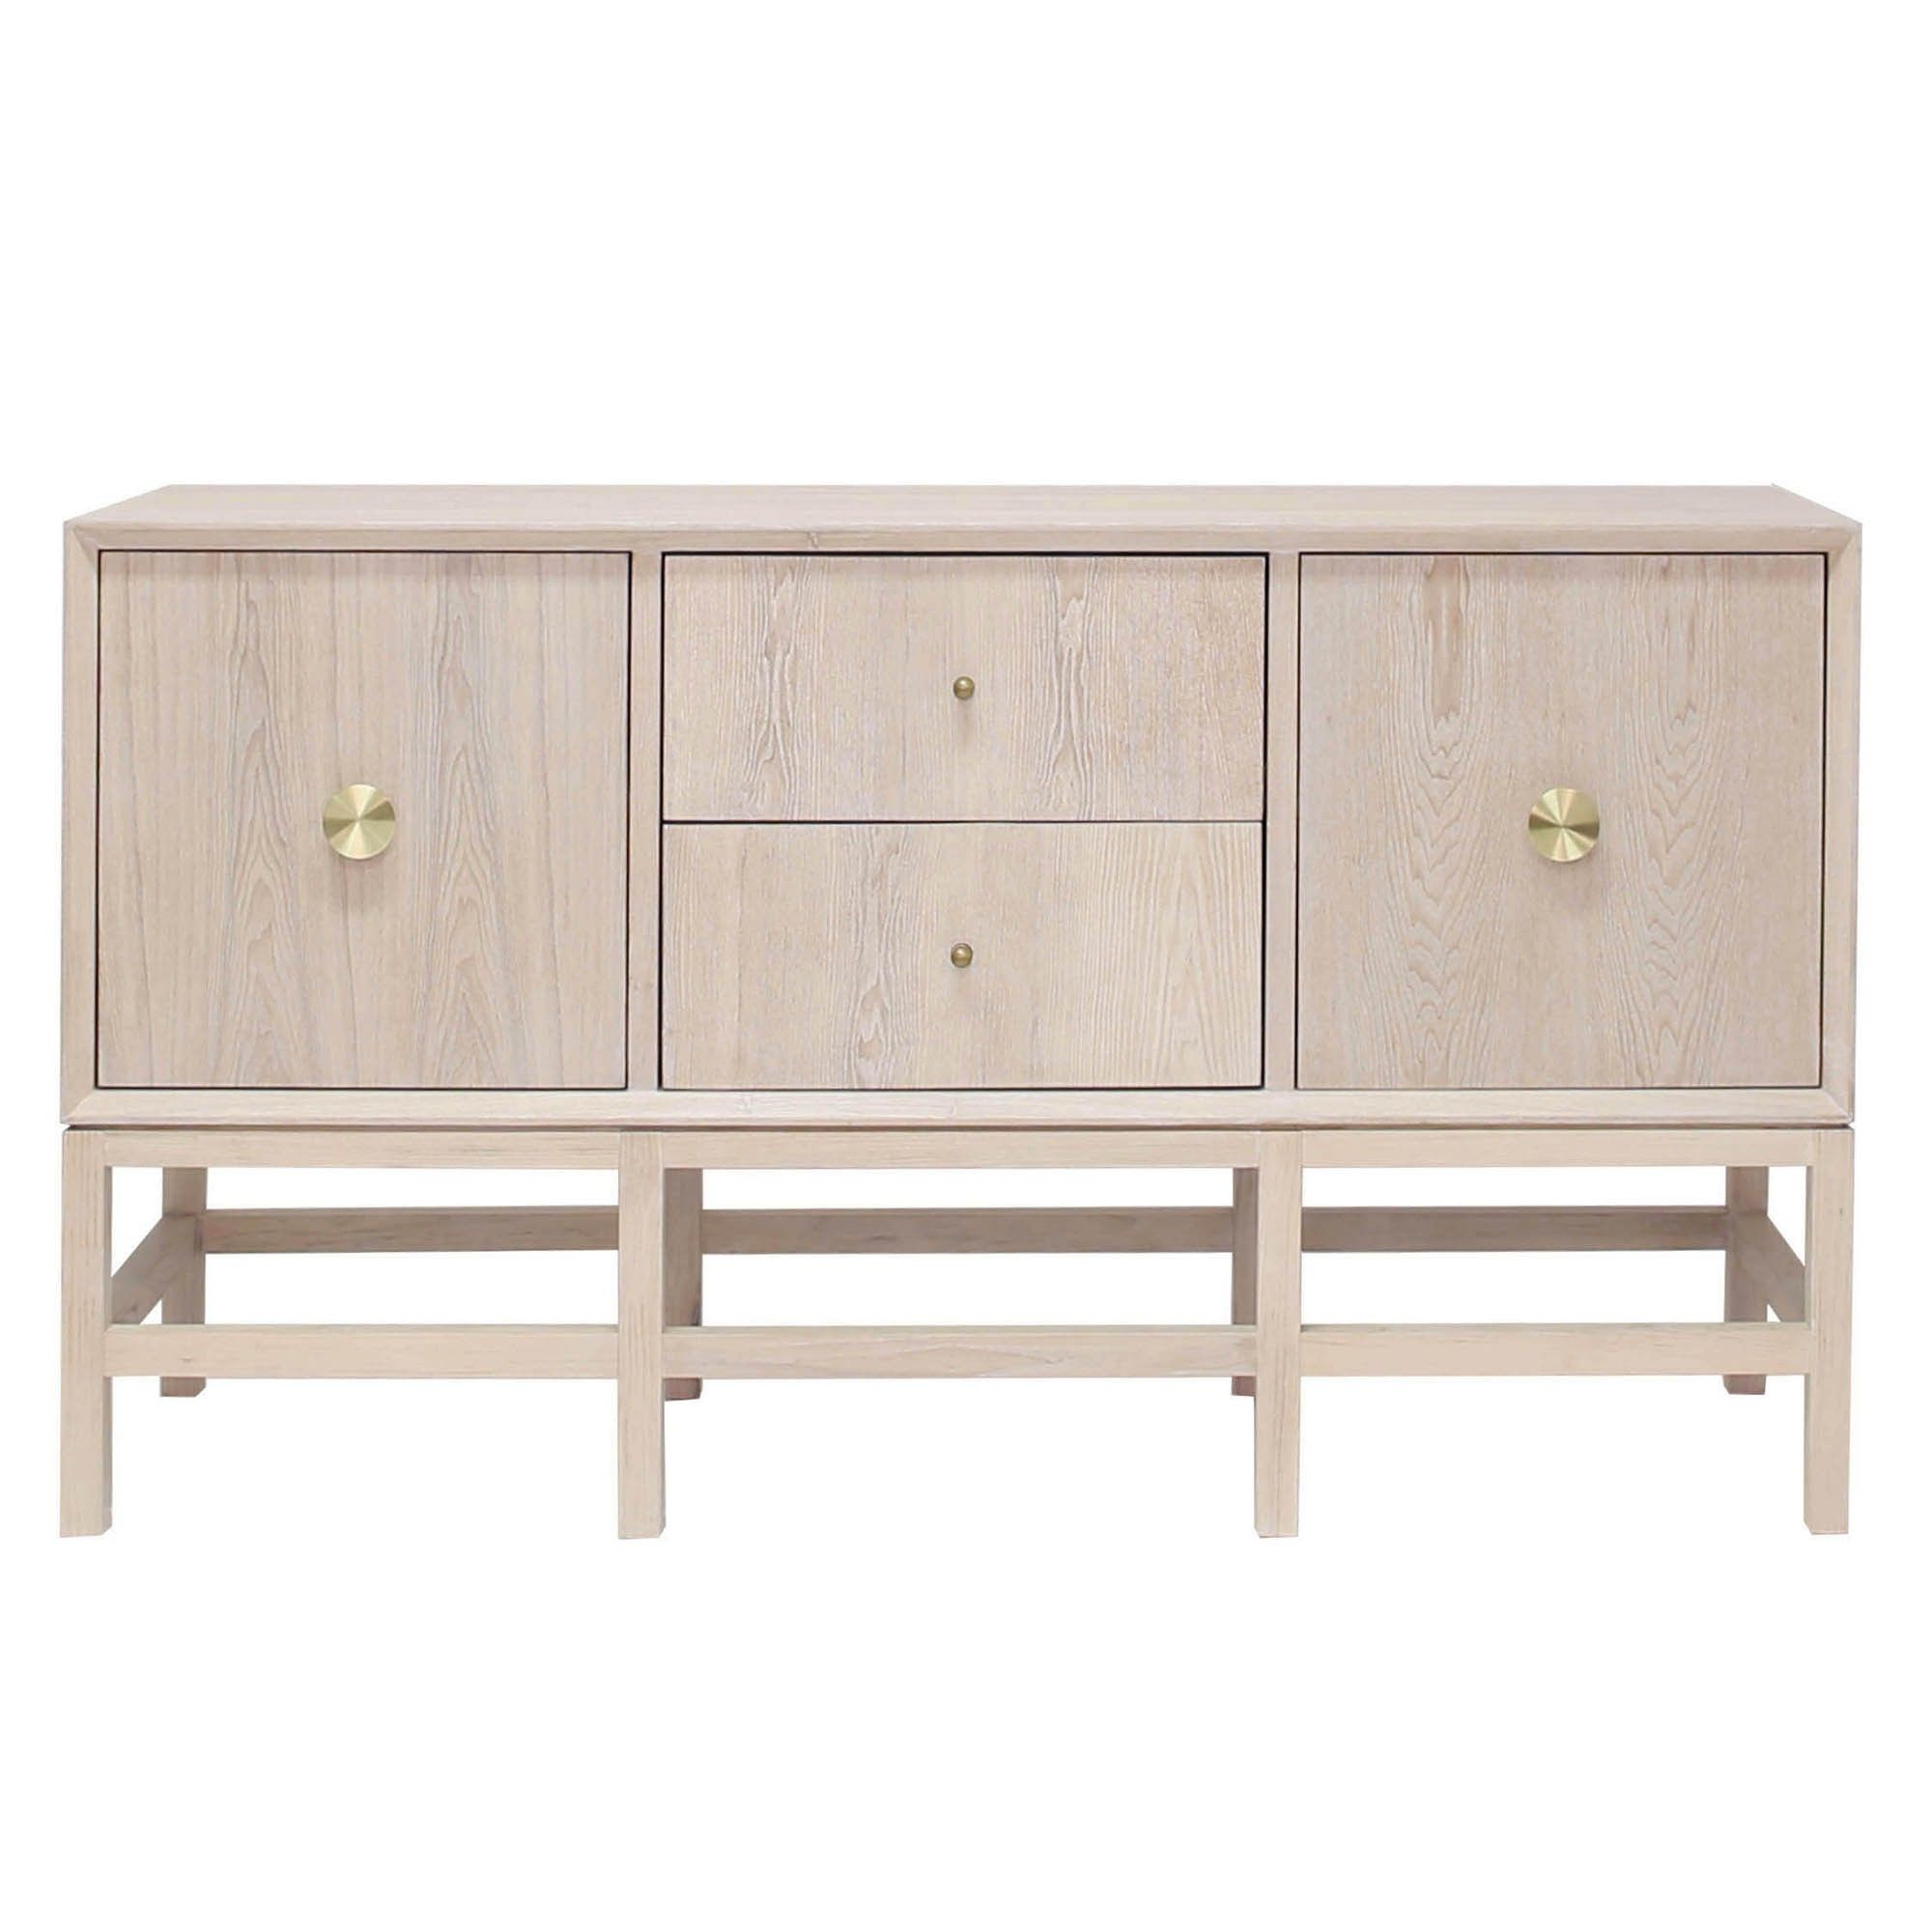 Otb 2Door Blue Accent Chest T Within Most Up To Date Neeja 3 Door Sideboards (View 12 of 20)